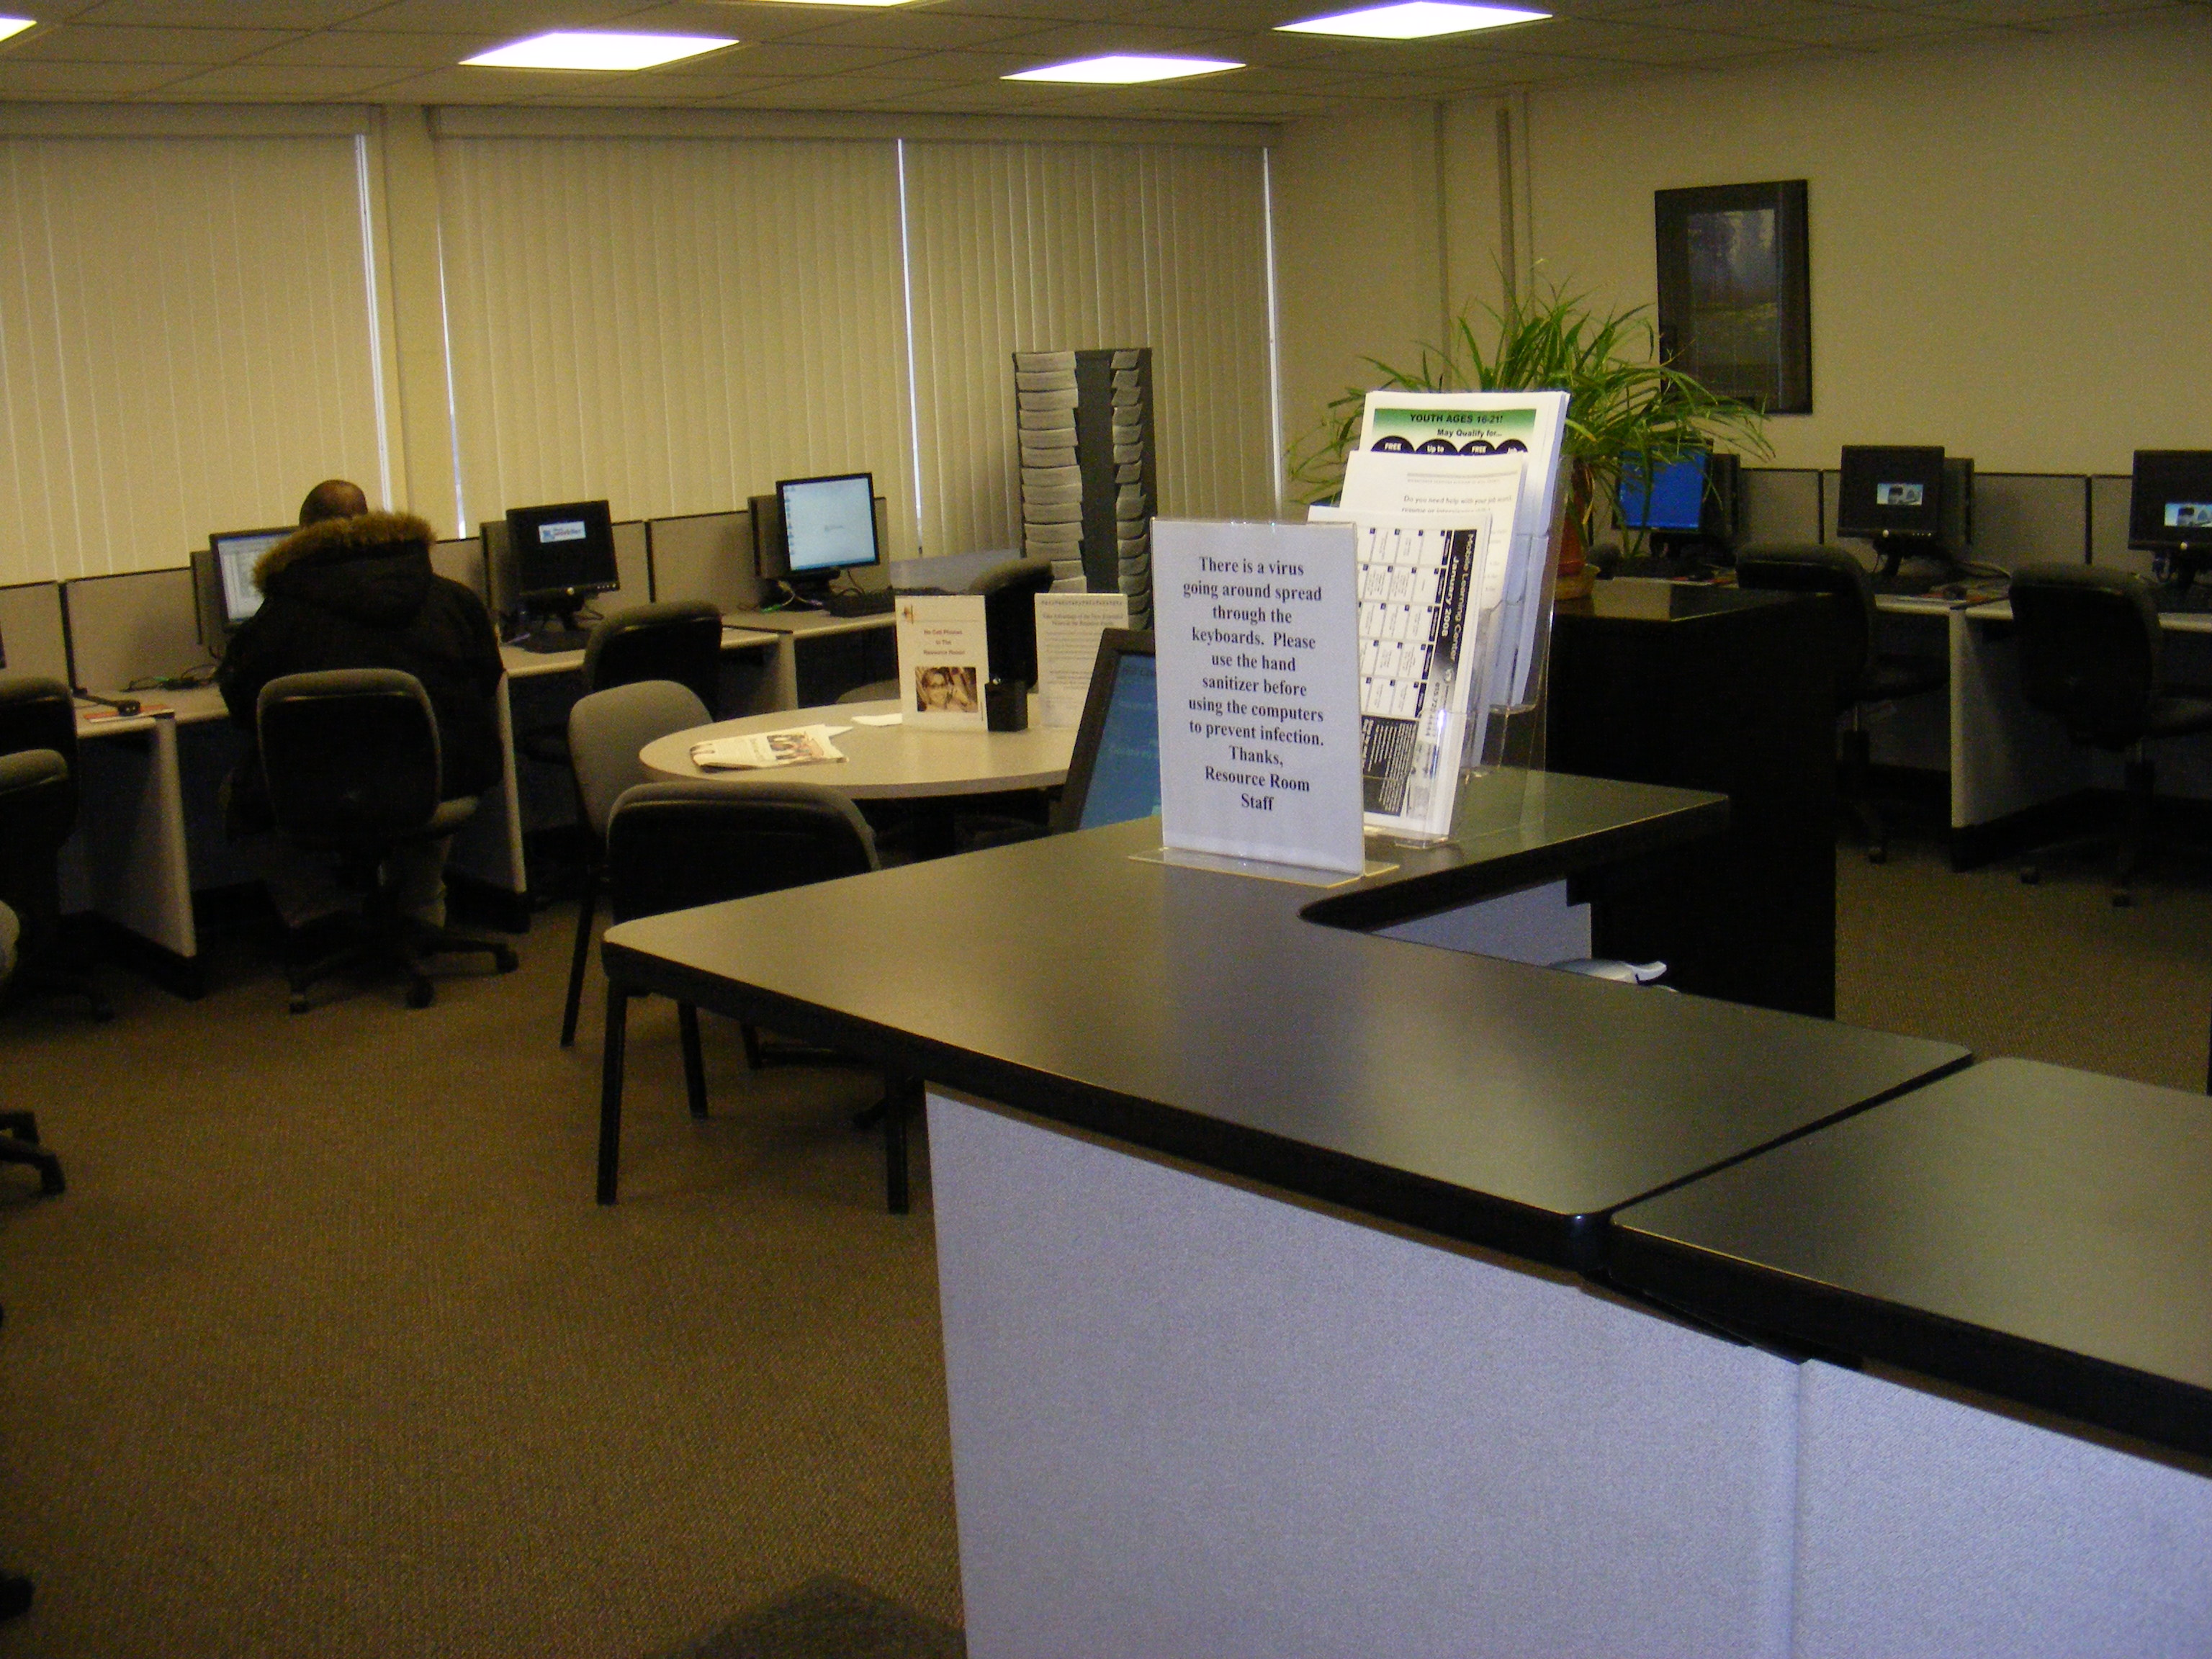 officepics043.jpg